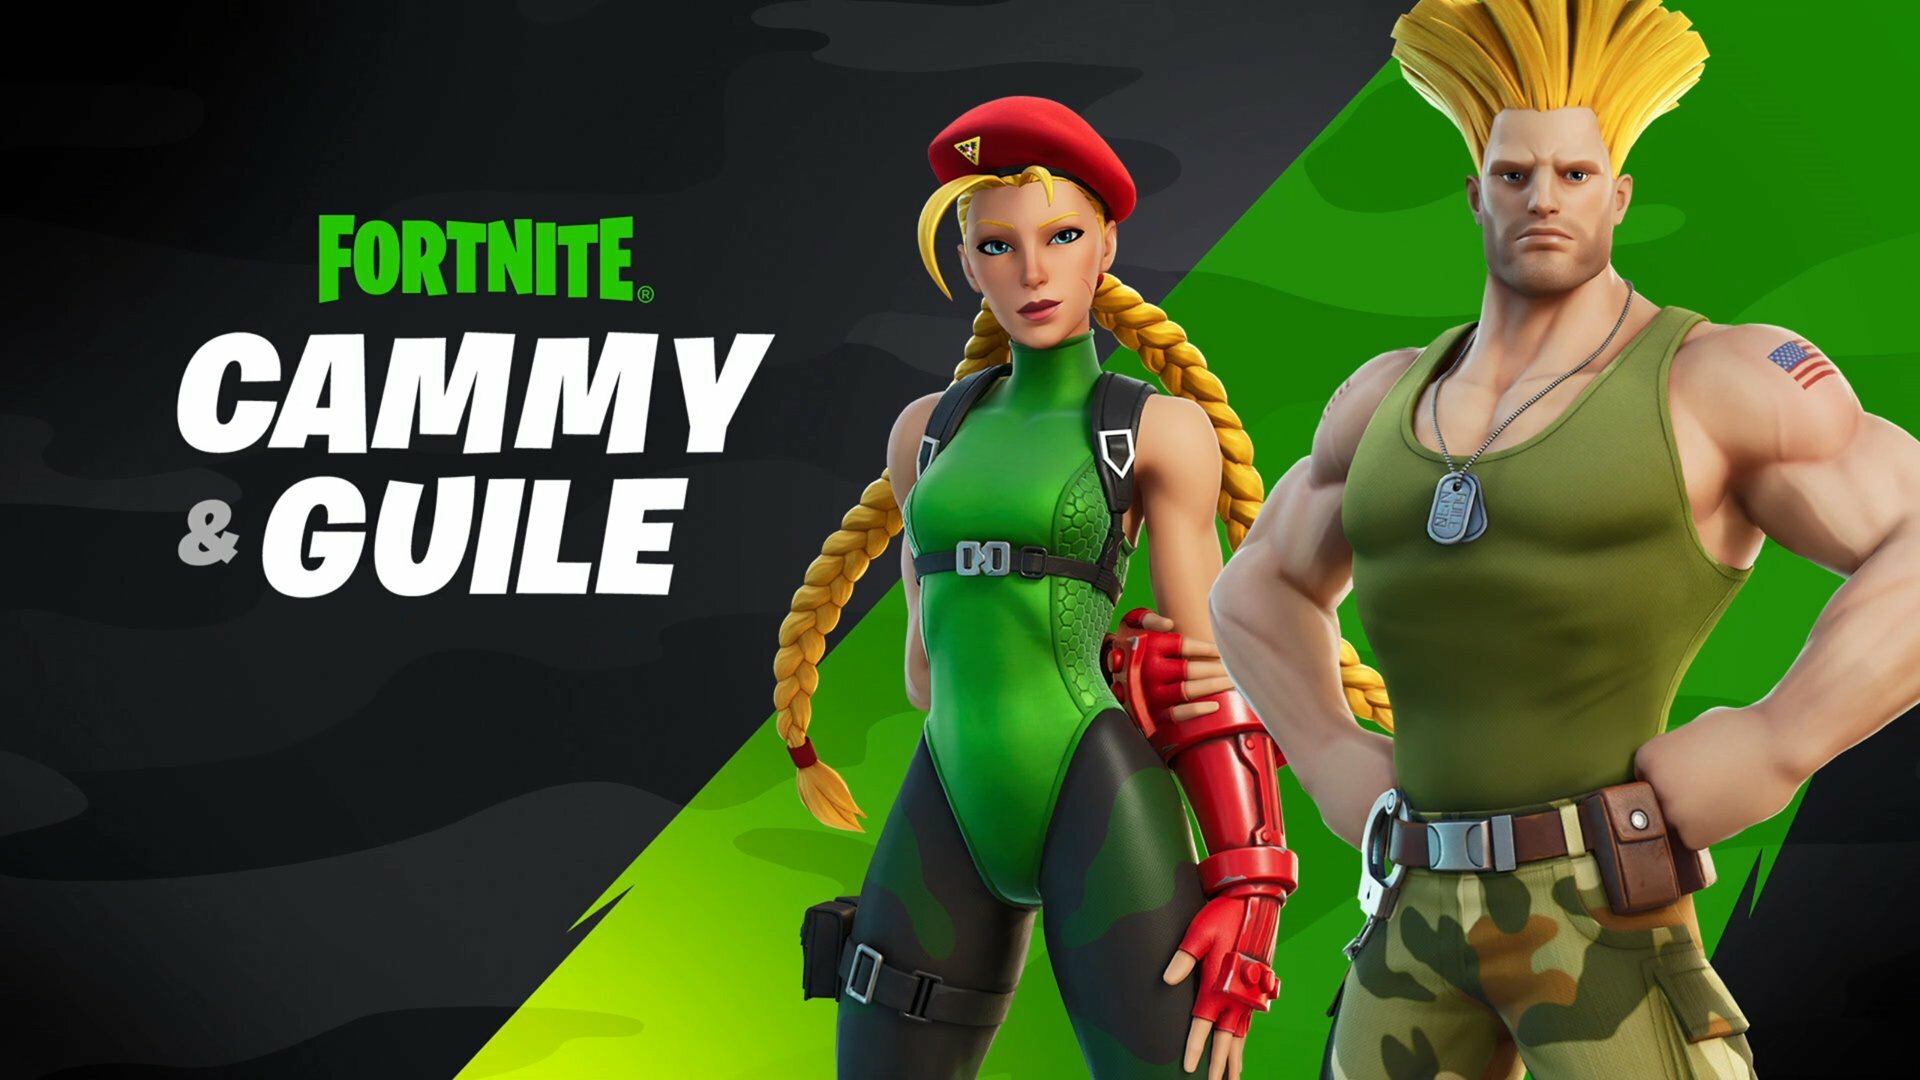 Street Fighter's Guile And Cammy Coming To Fortnite - GameSpot